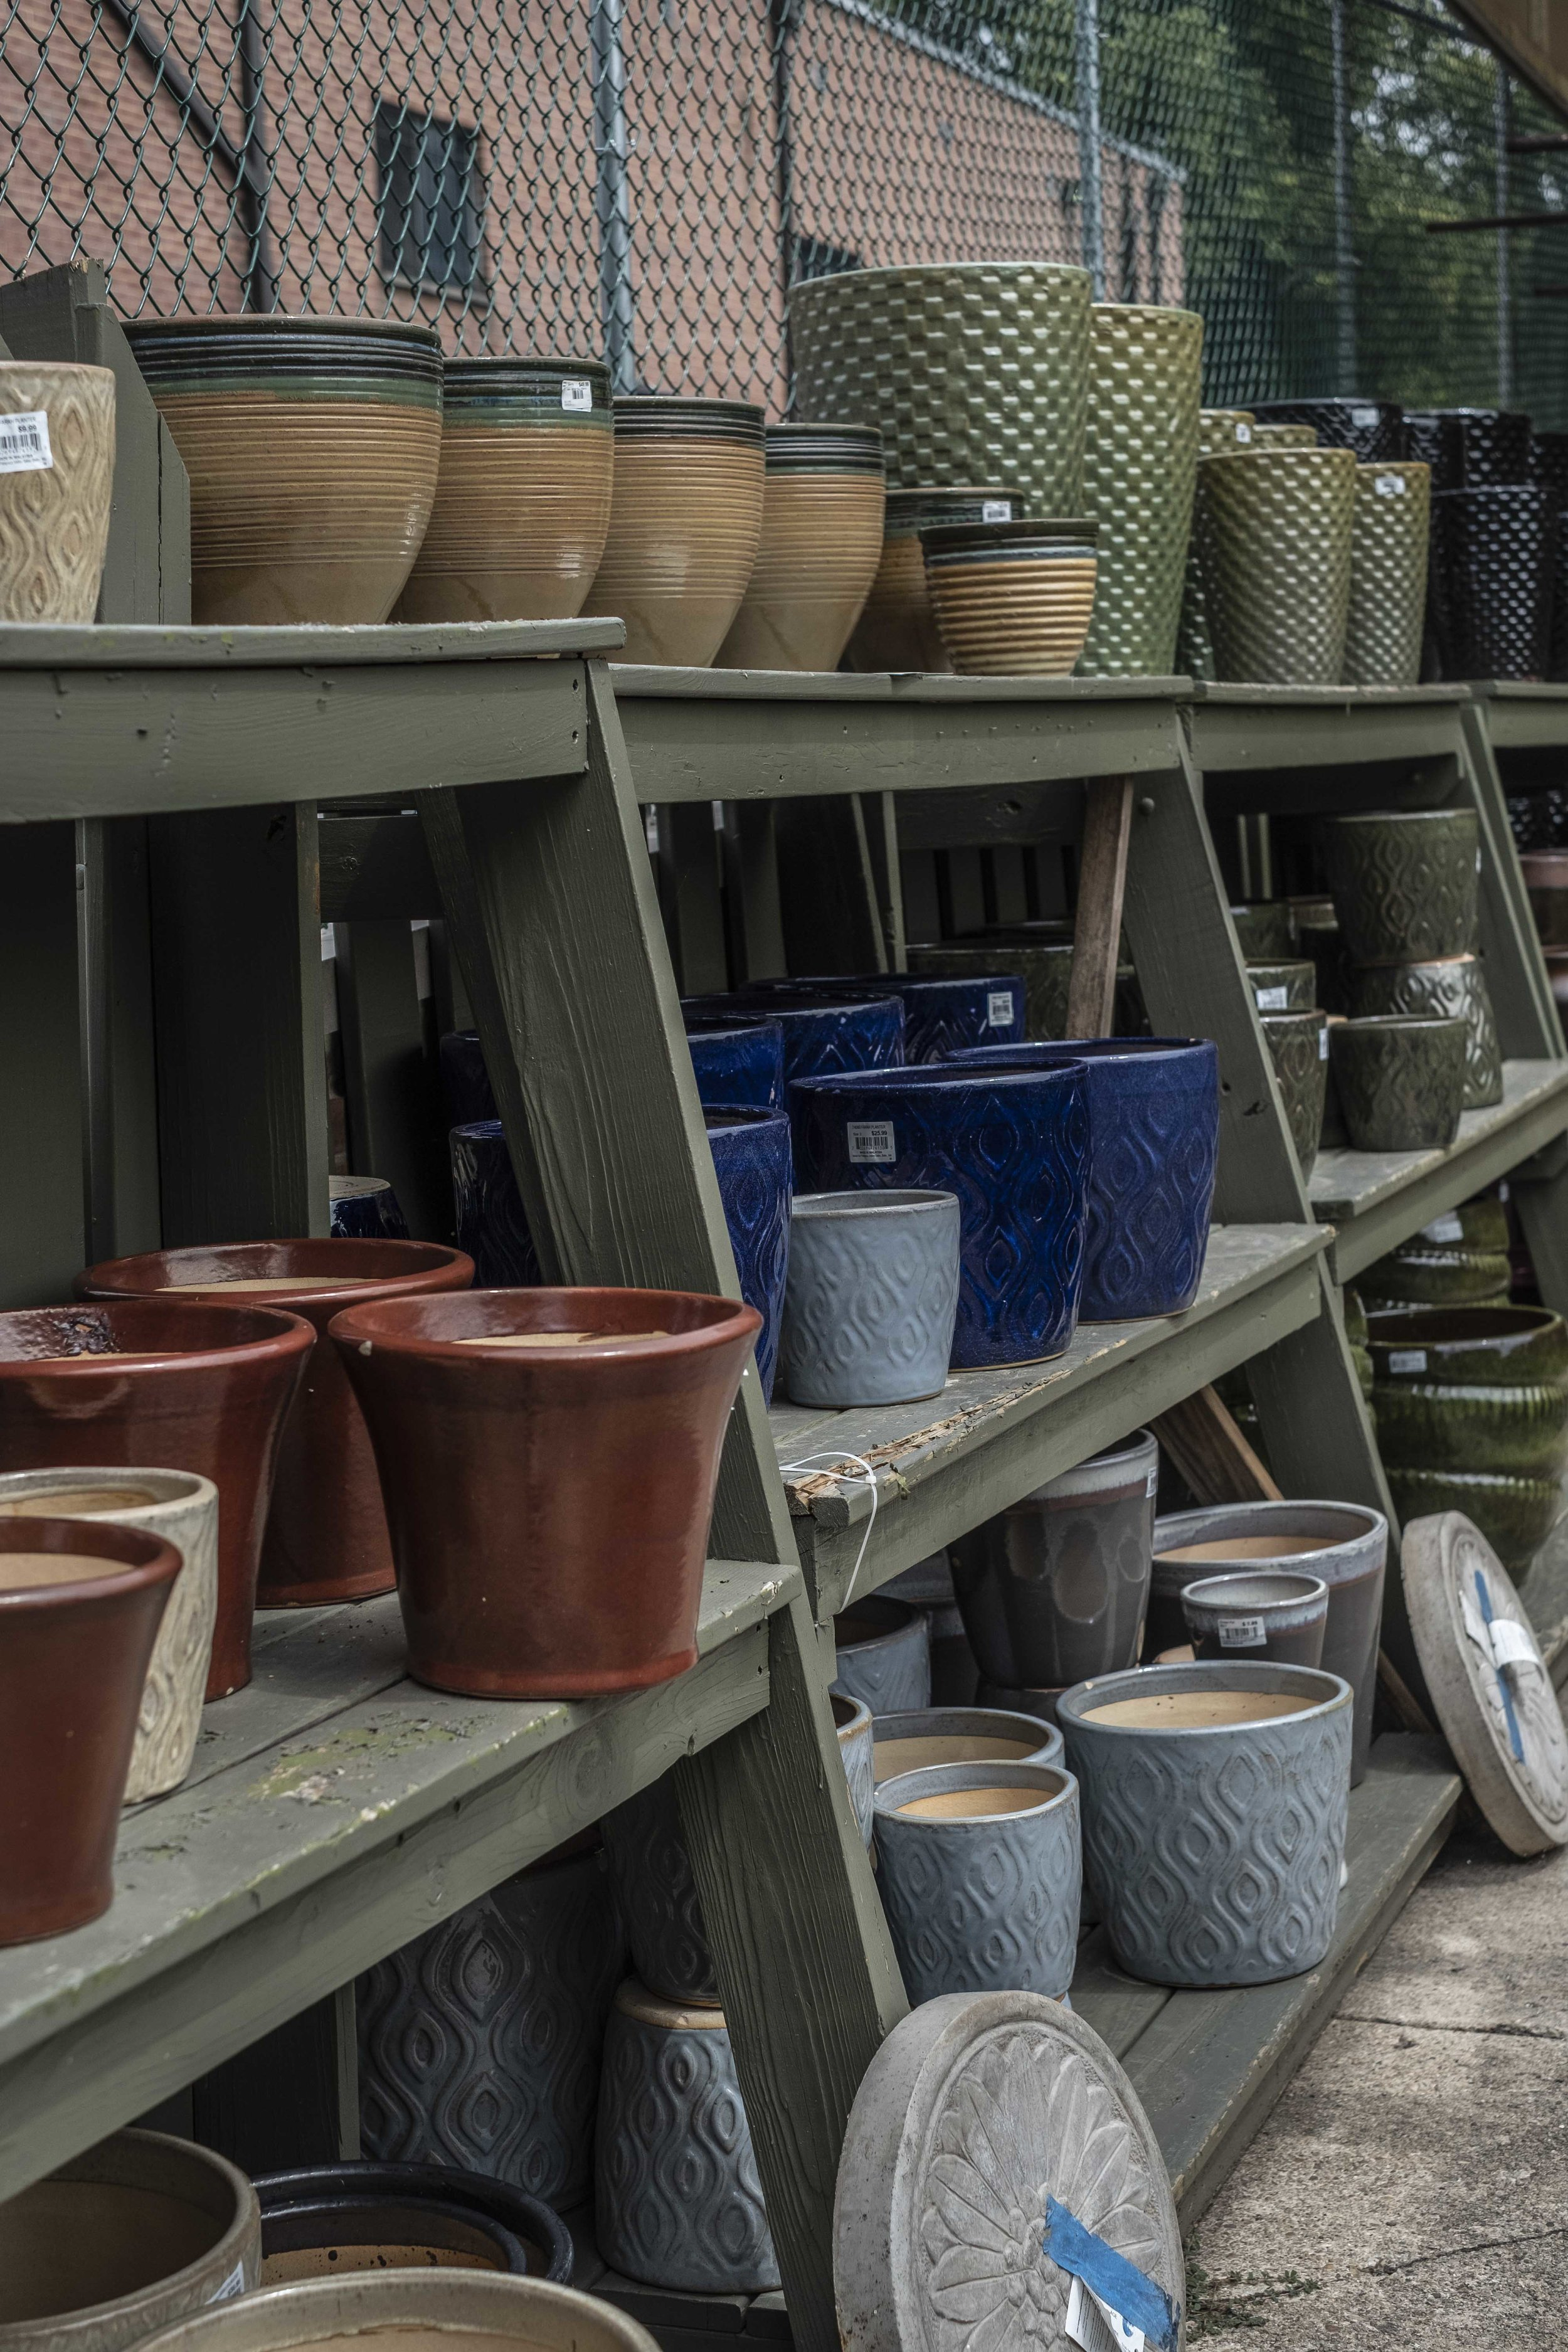 Finding quality, reasonably priced pottery can be really difficult. I'm guessing but they probably stock the nice ceramic glazed pots on a seasonal basis.